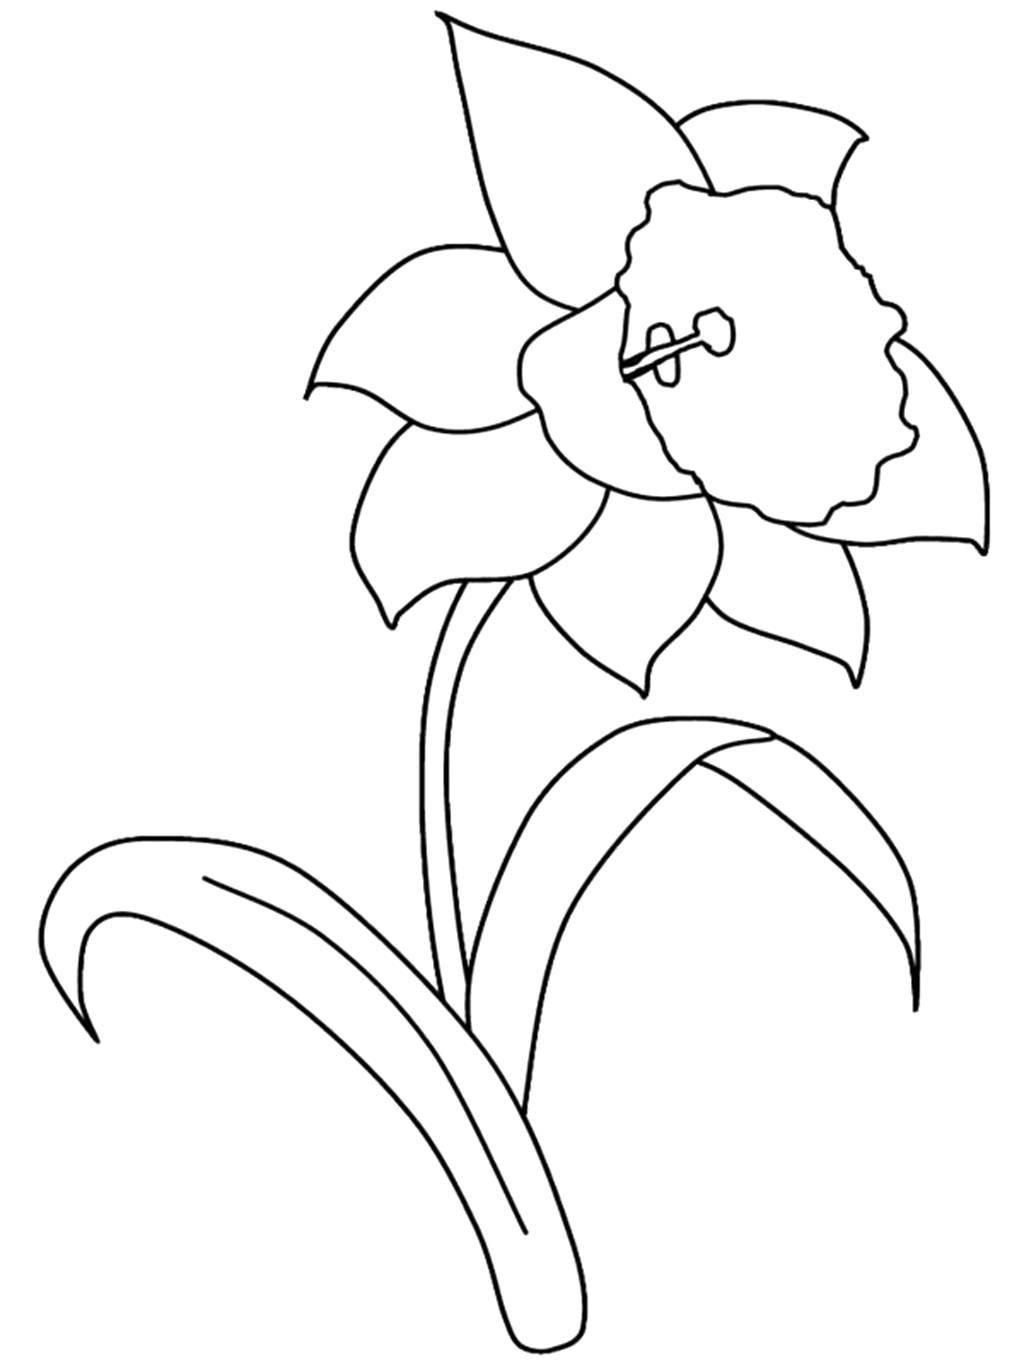 Daffodil Coloring Pages Veles Collection Of Daffodil Coloring Pages Gallery